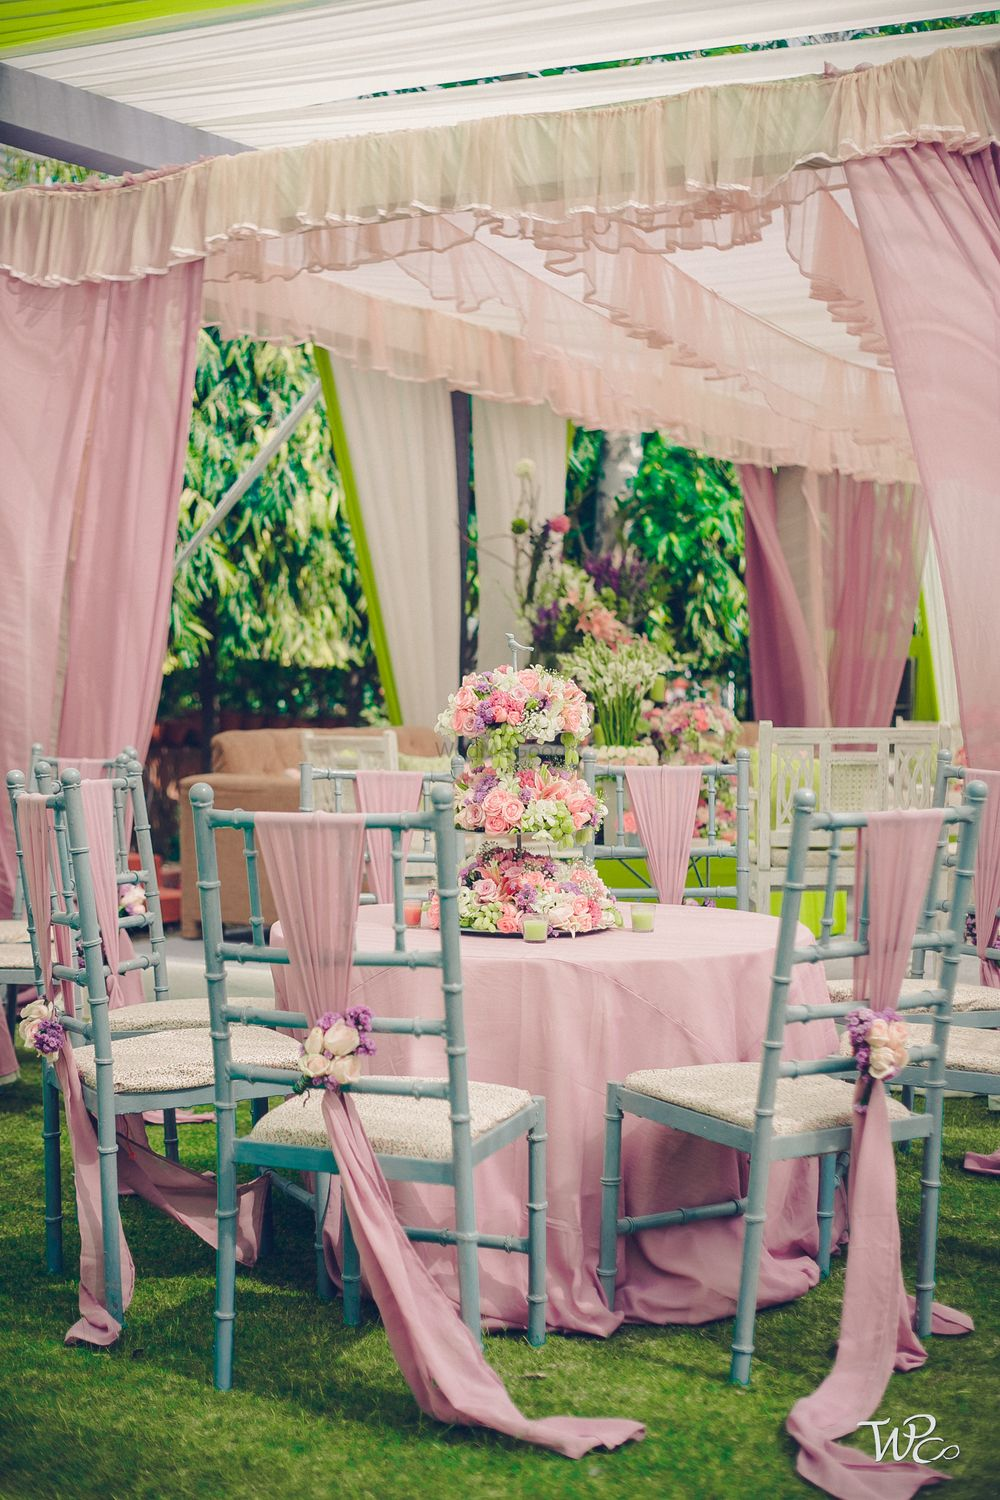 Photo of Soft pink table decor with drapes and flowers